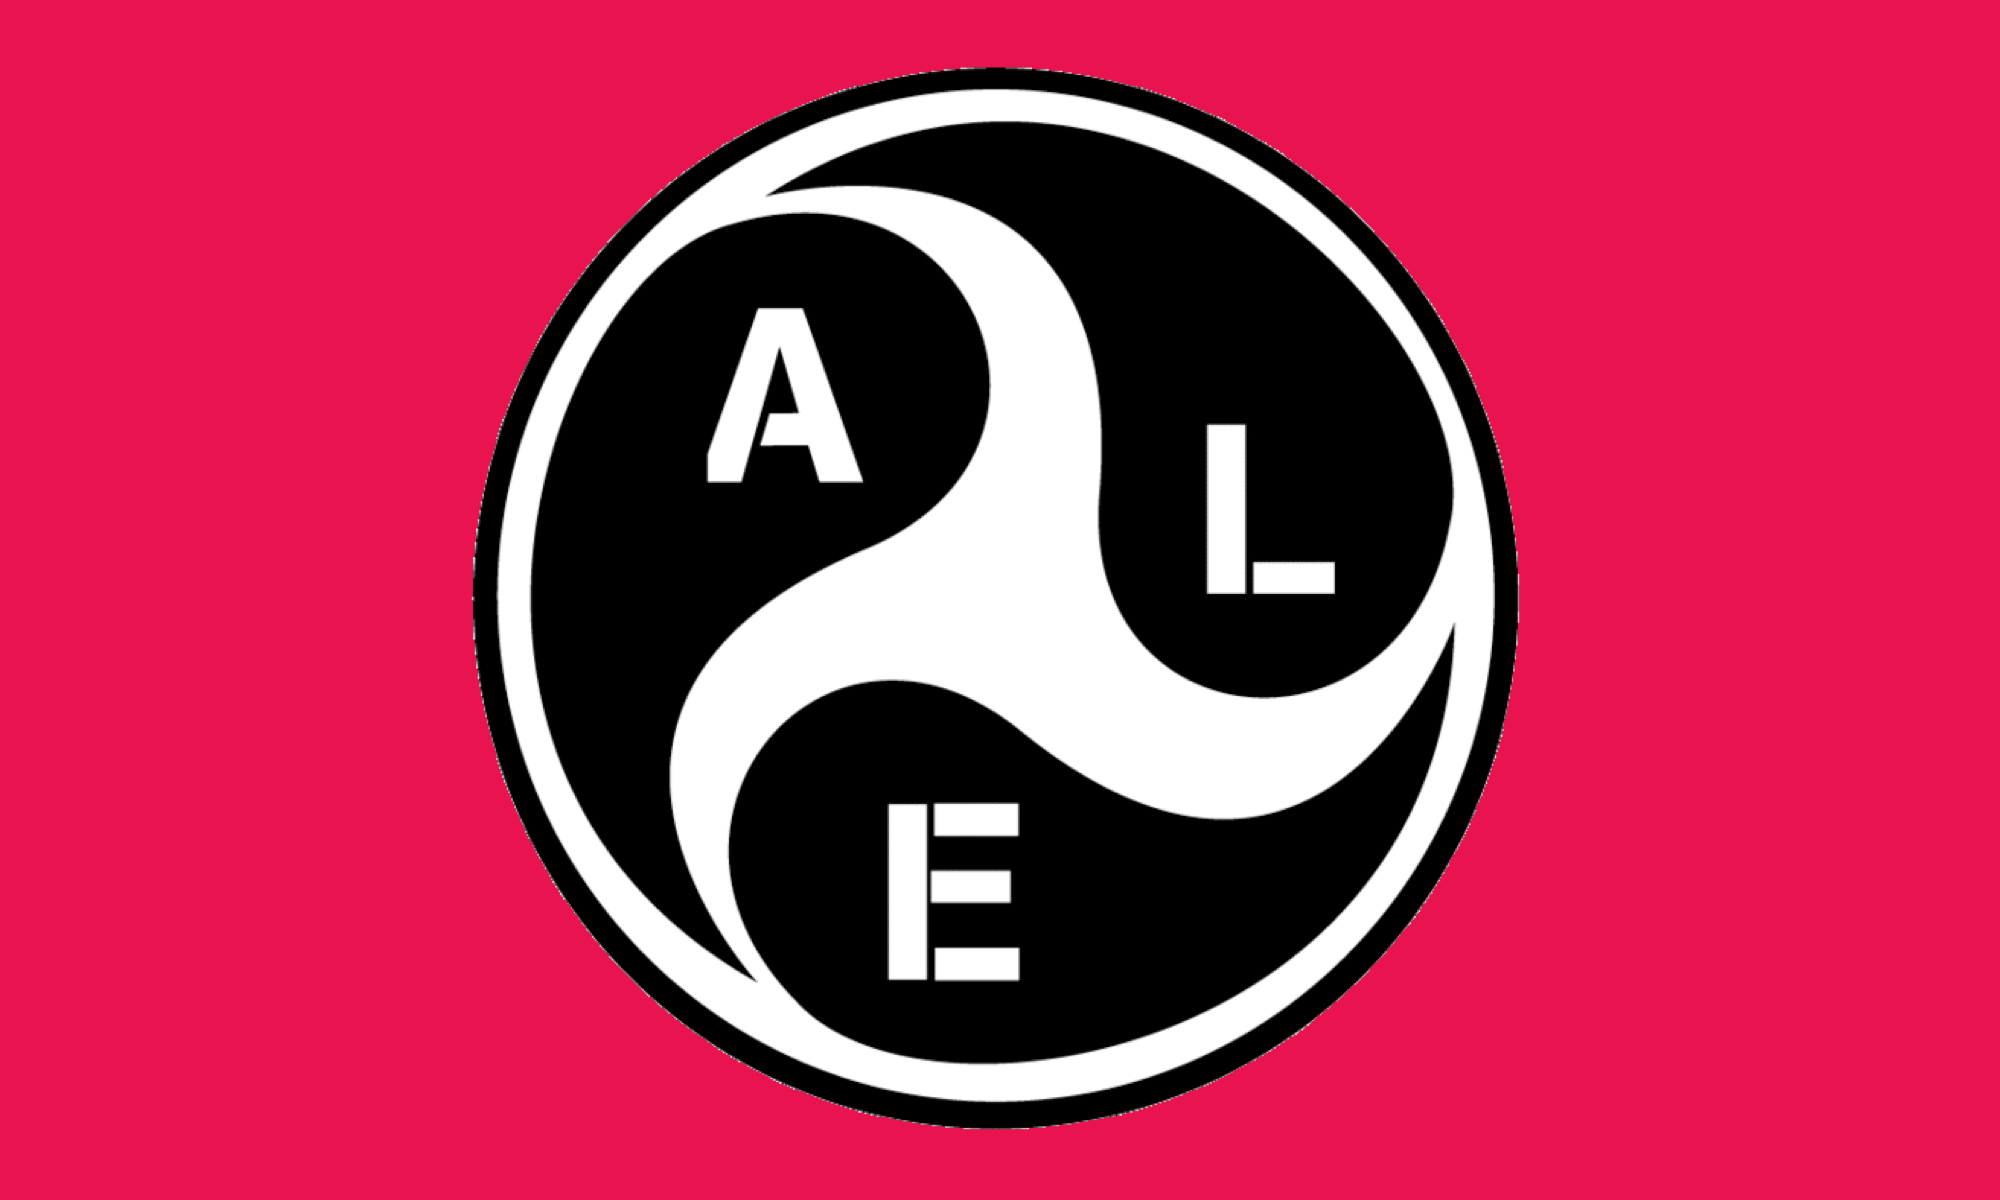 Alternative Lifestyle Enthusiasts (A.L.E.) Logo